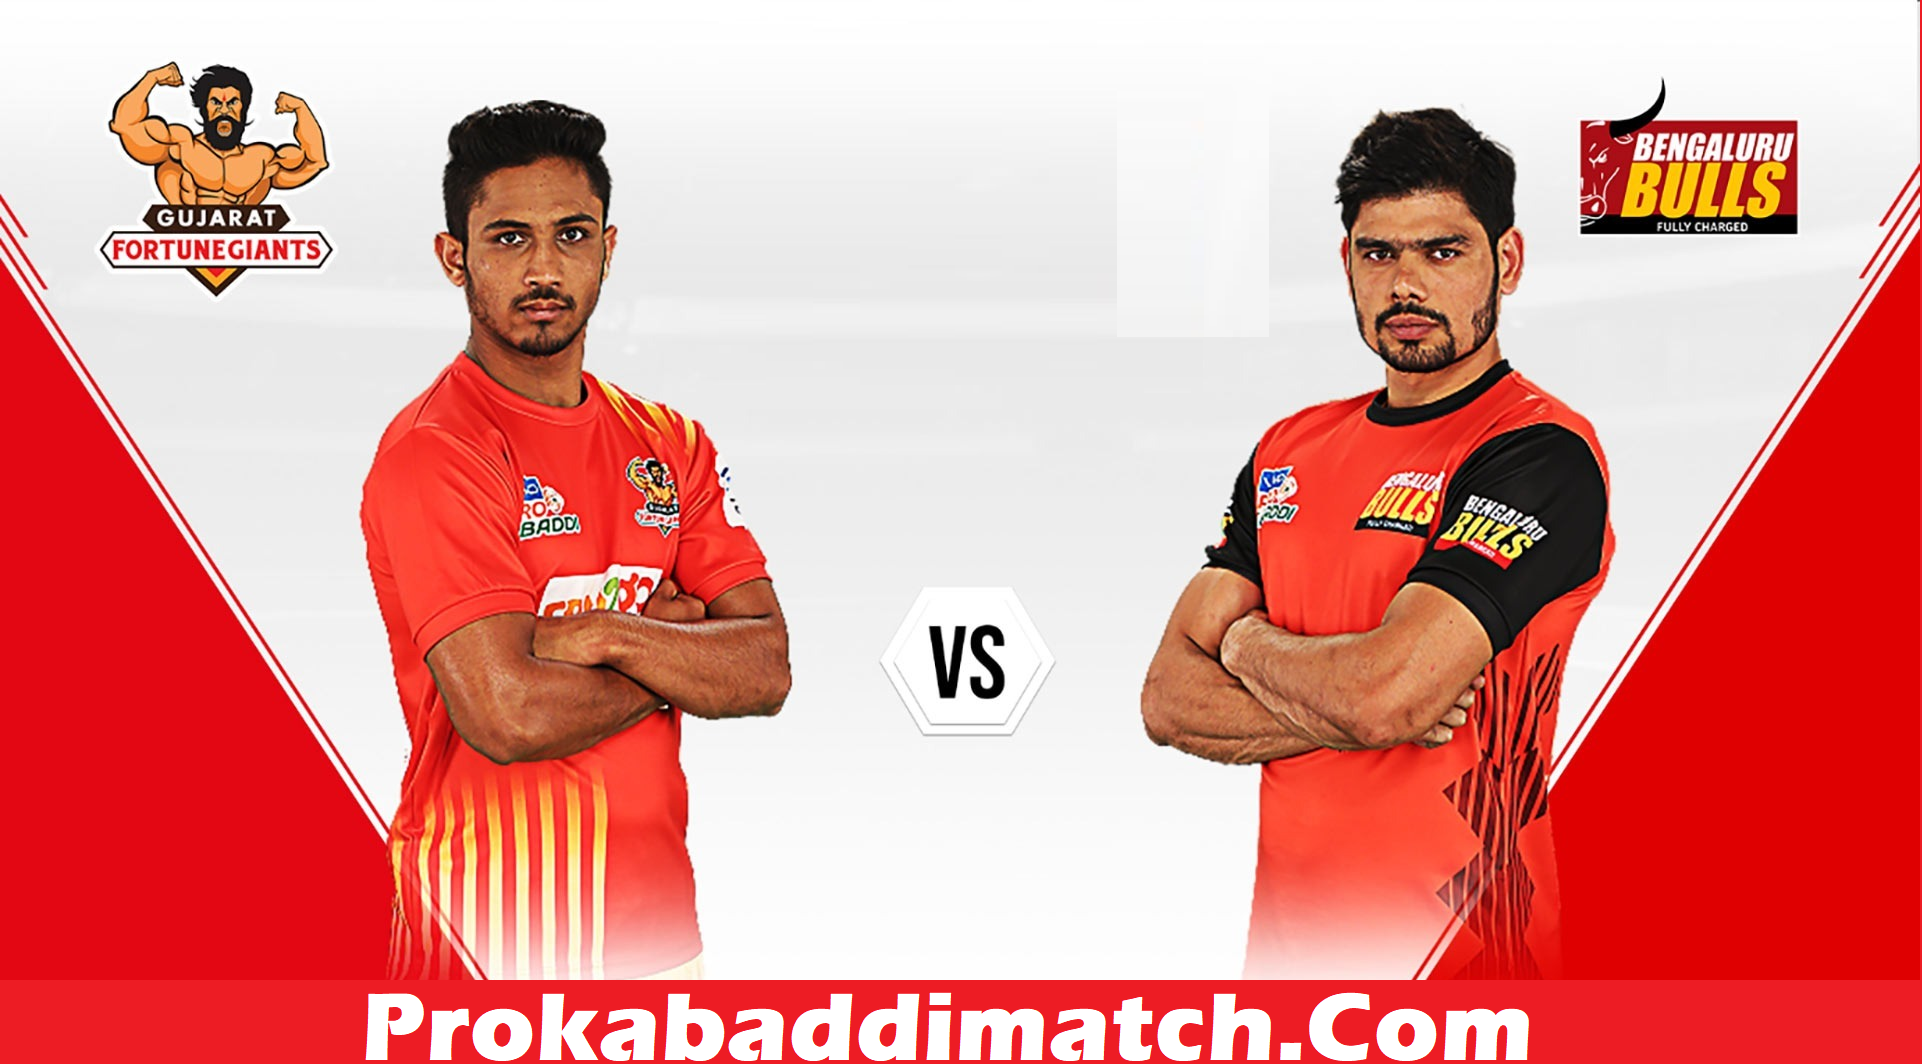 Bengaluru Bulls Vs Gujrat Fortunegaints PKL 2019 Dream11 – Preview